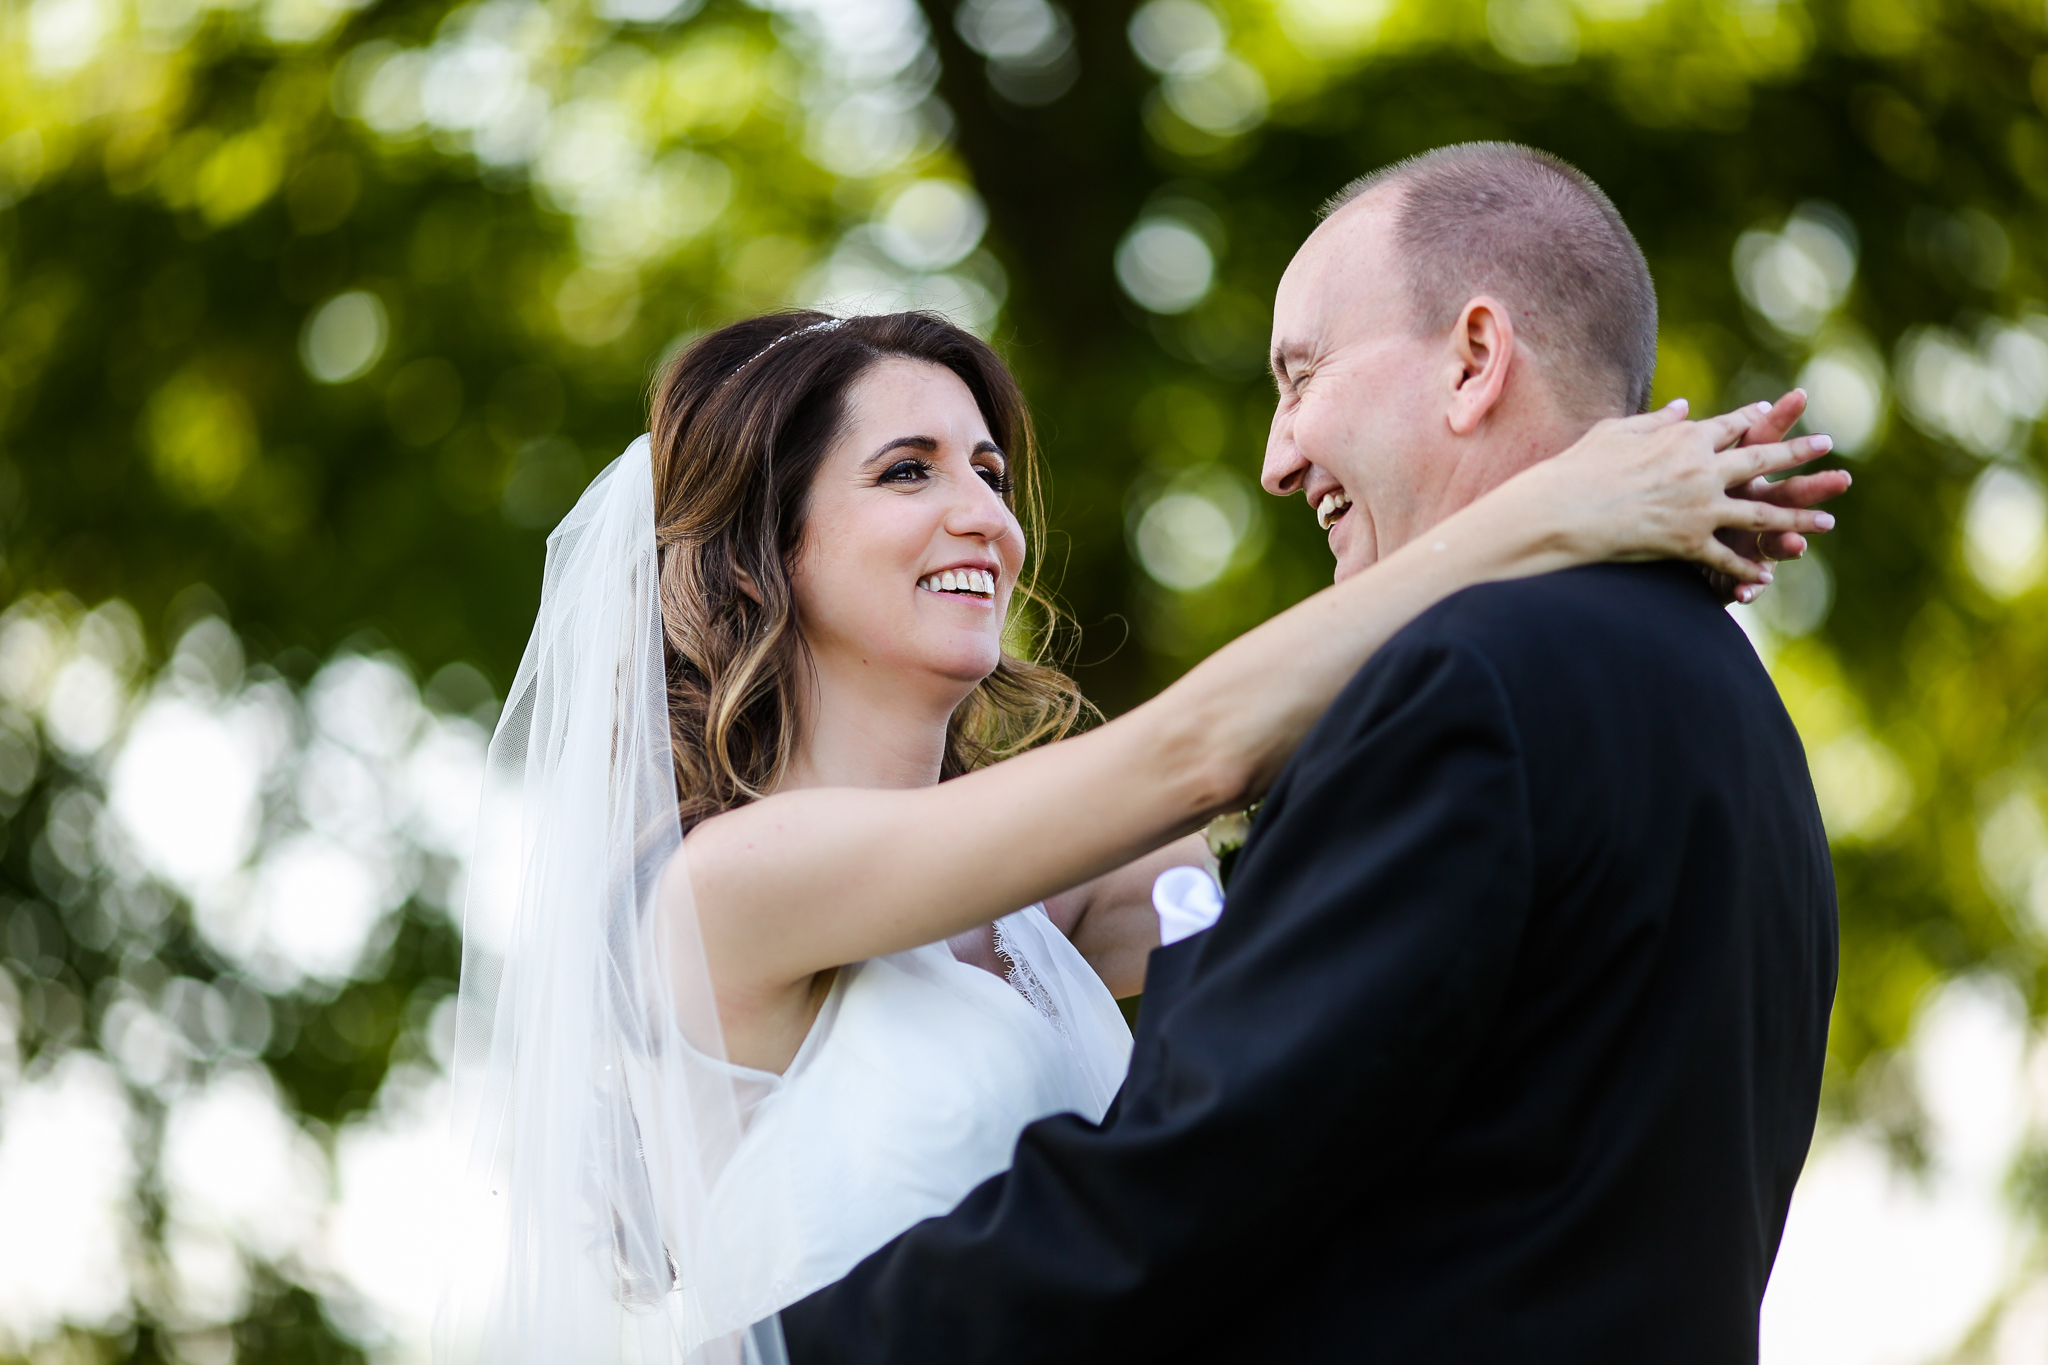 Joyful Wedding Photography